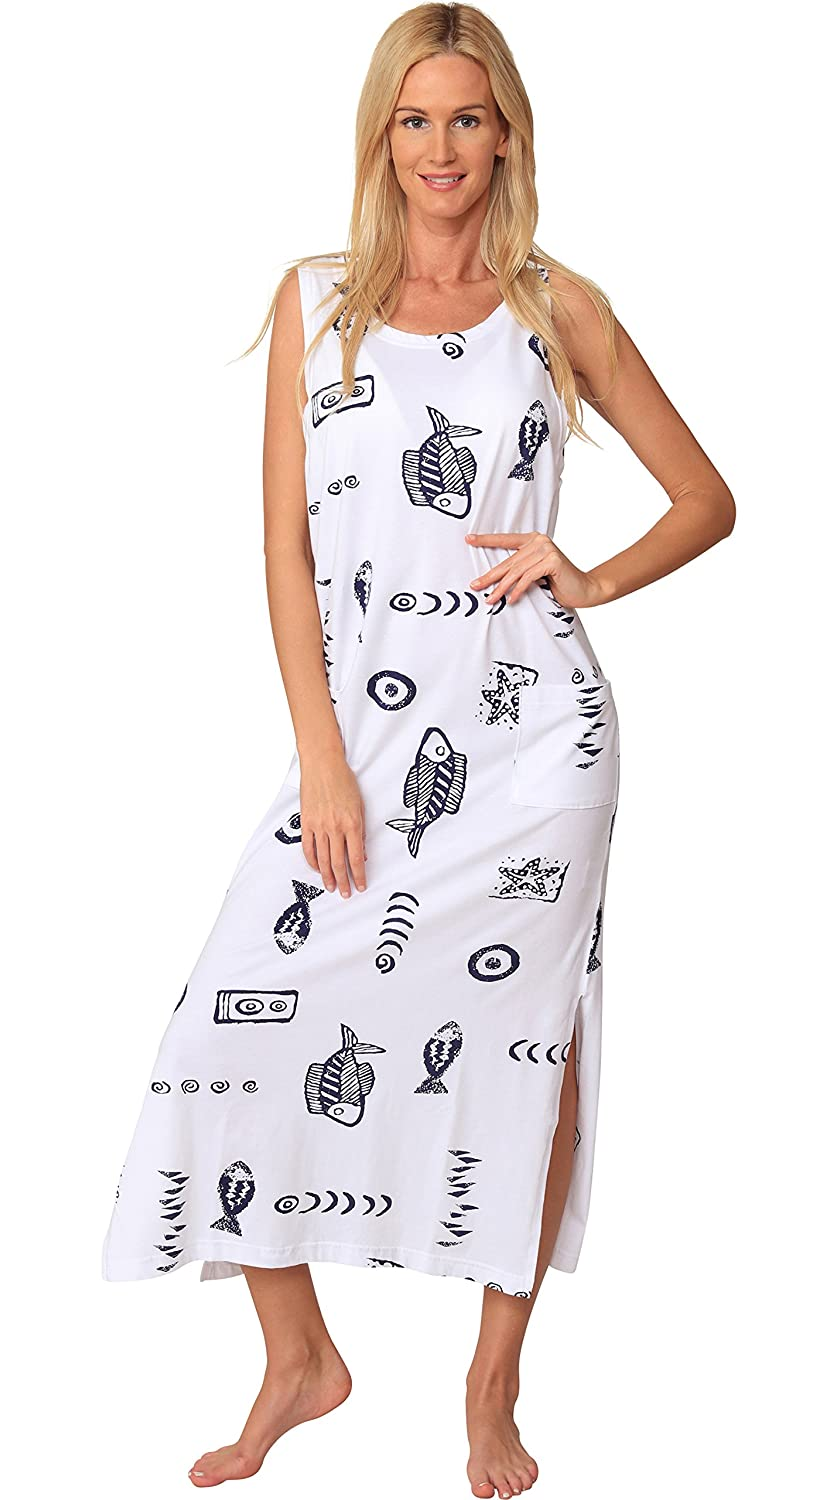 Ingear Cotton Dress Long Casual Beach Summer Tank Print Tee Cover Up Plus Size